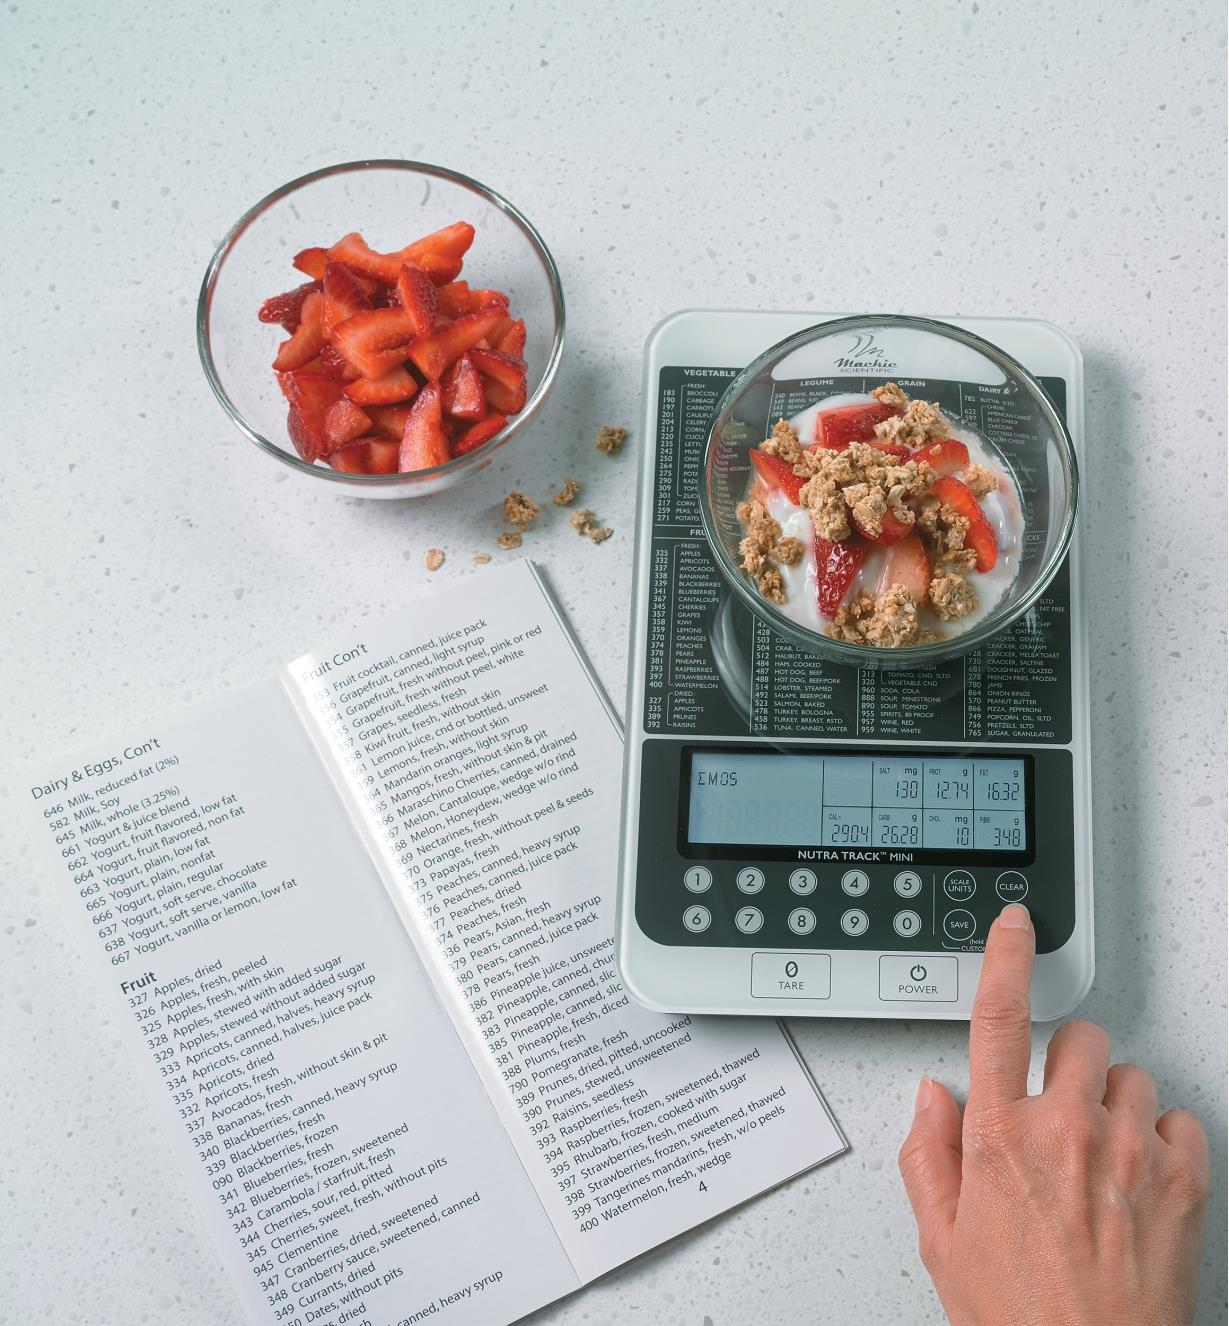 Nutritional Scale weighing a bowl of granola and strawberries, with the guide lying open next to it